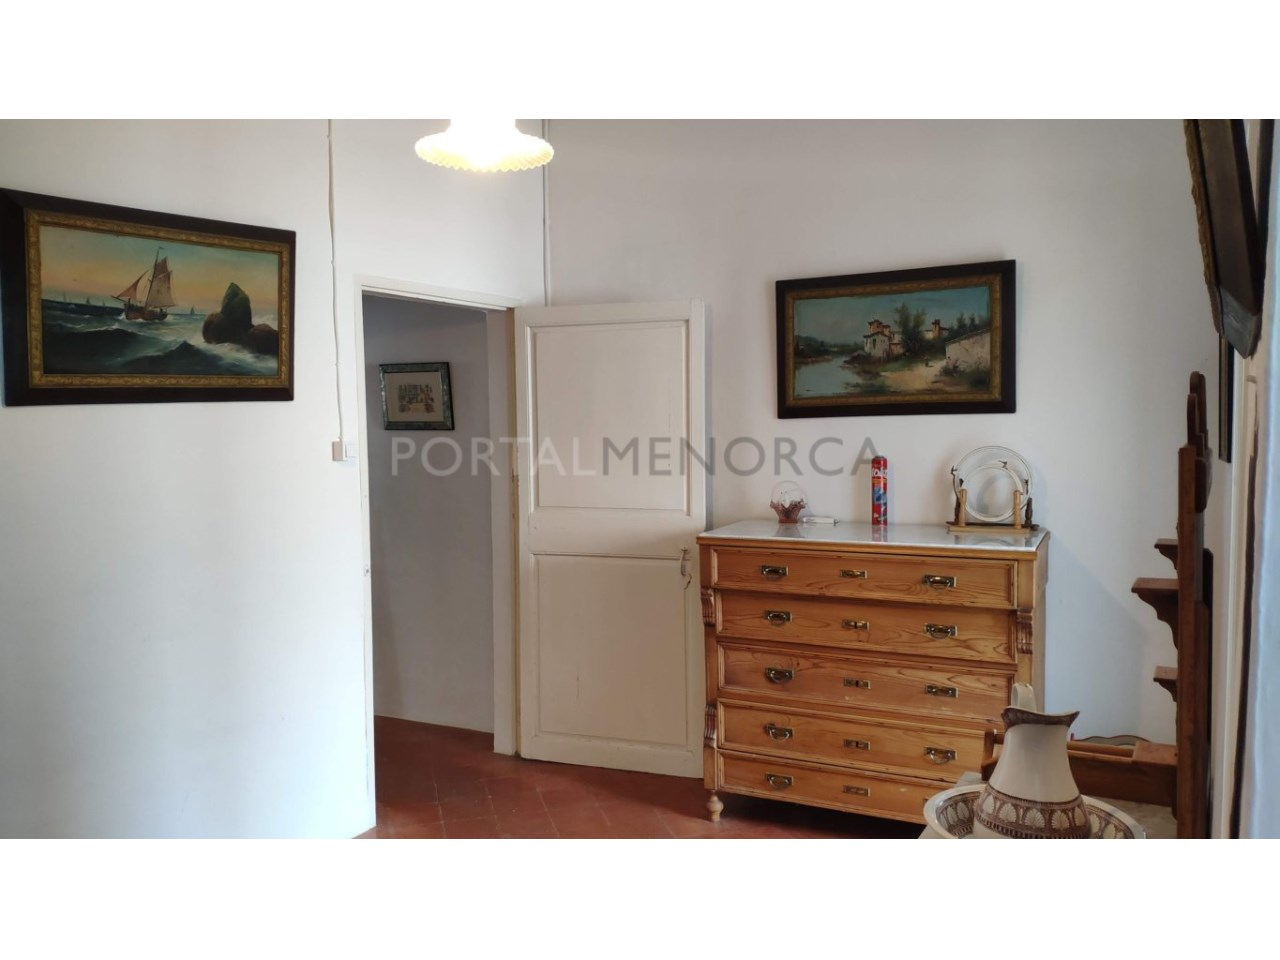 House for sale in the old town of Ciutadella-Suite